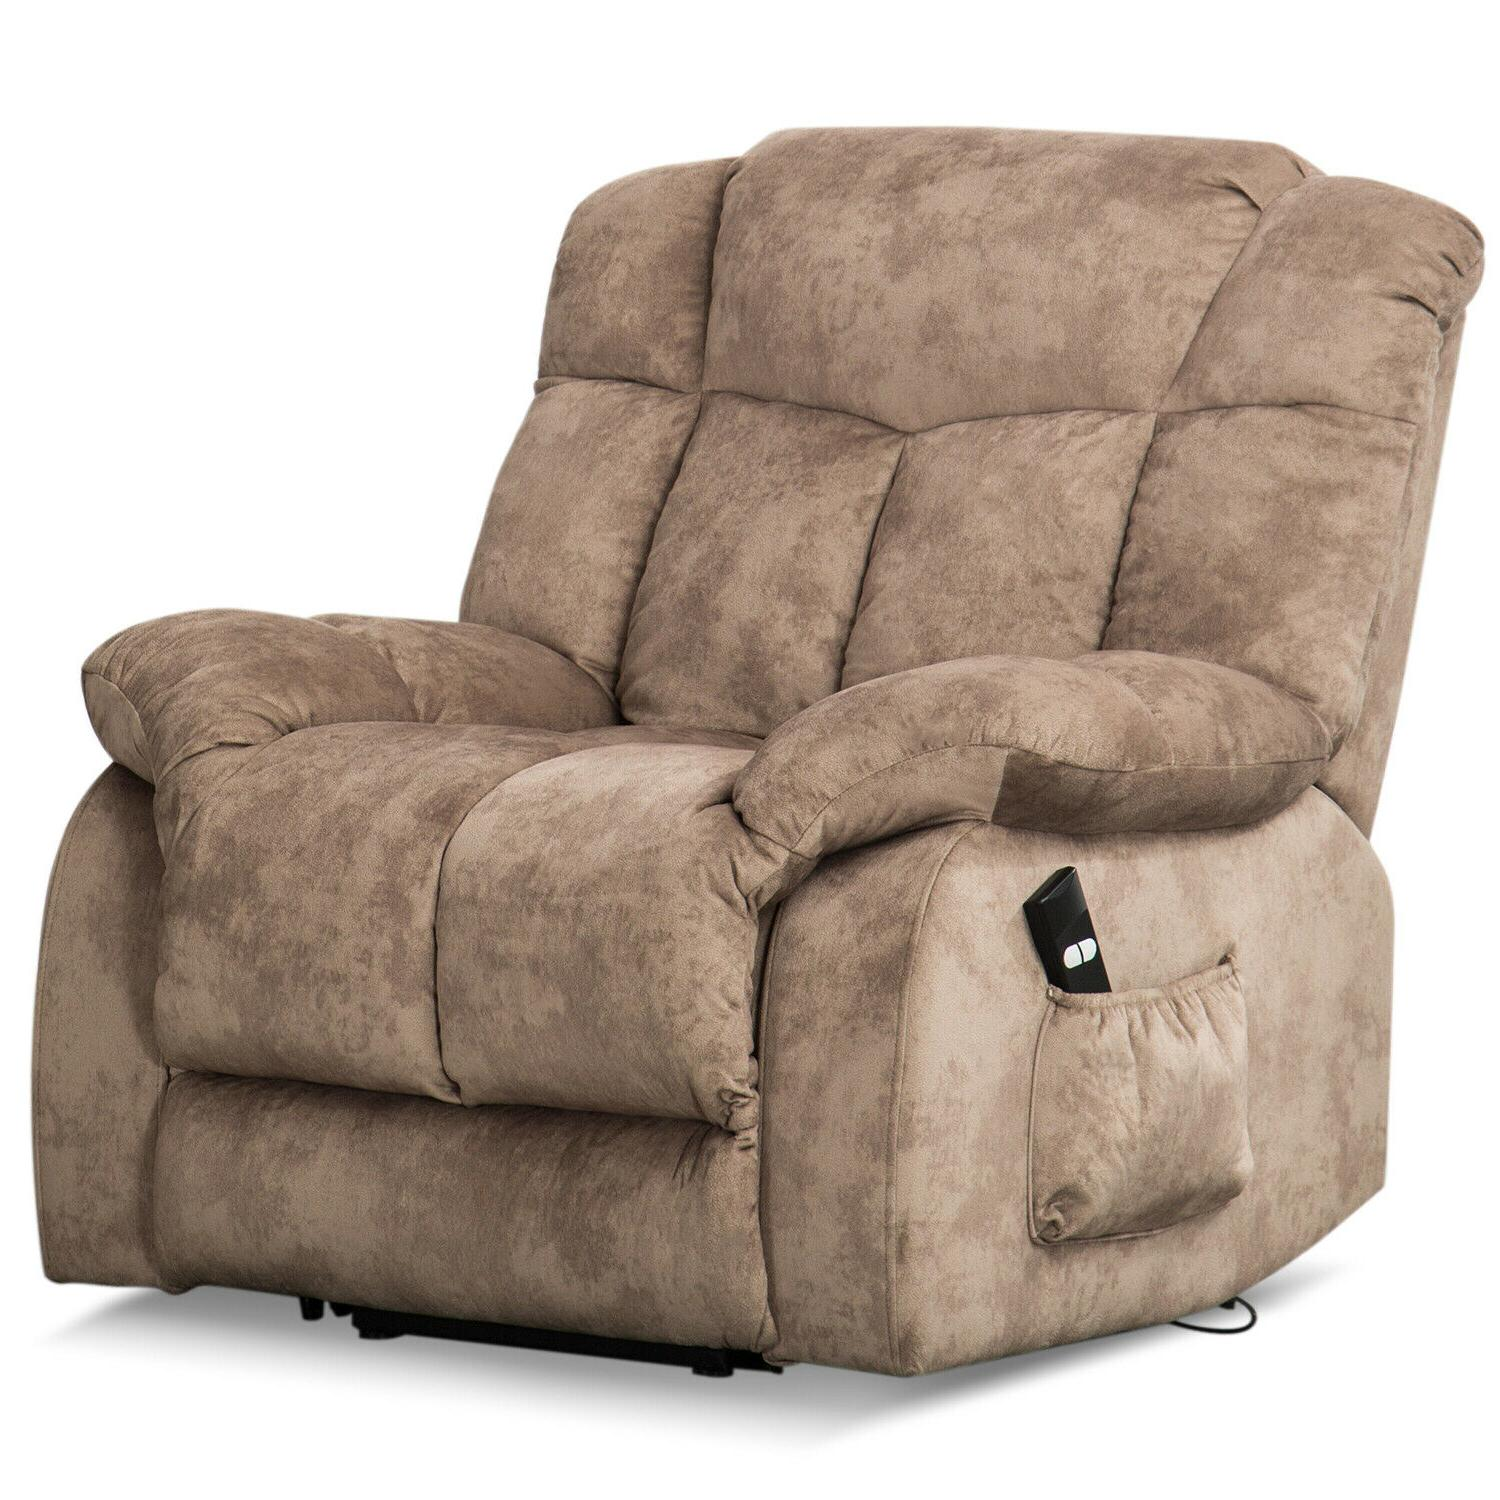 Power Chair Overstuffed Seat Lounge RC